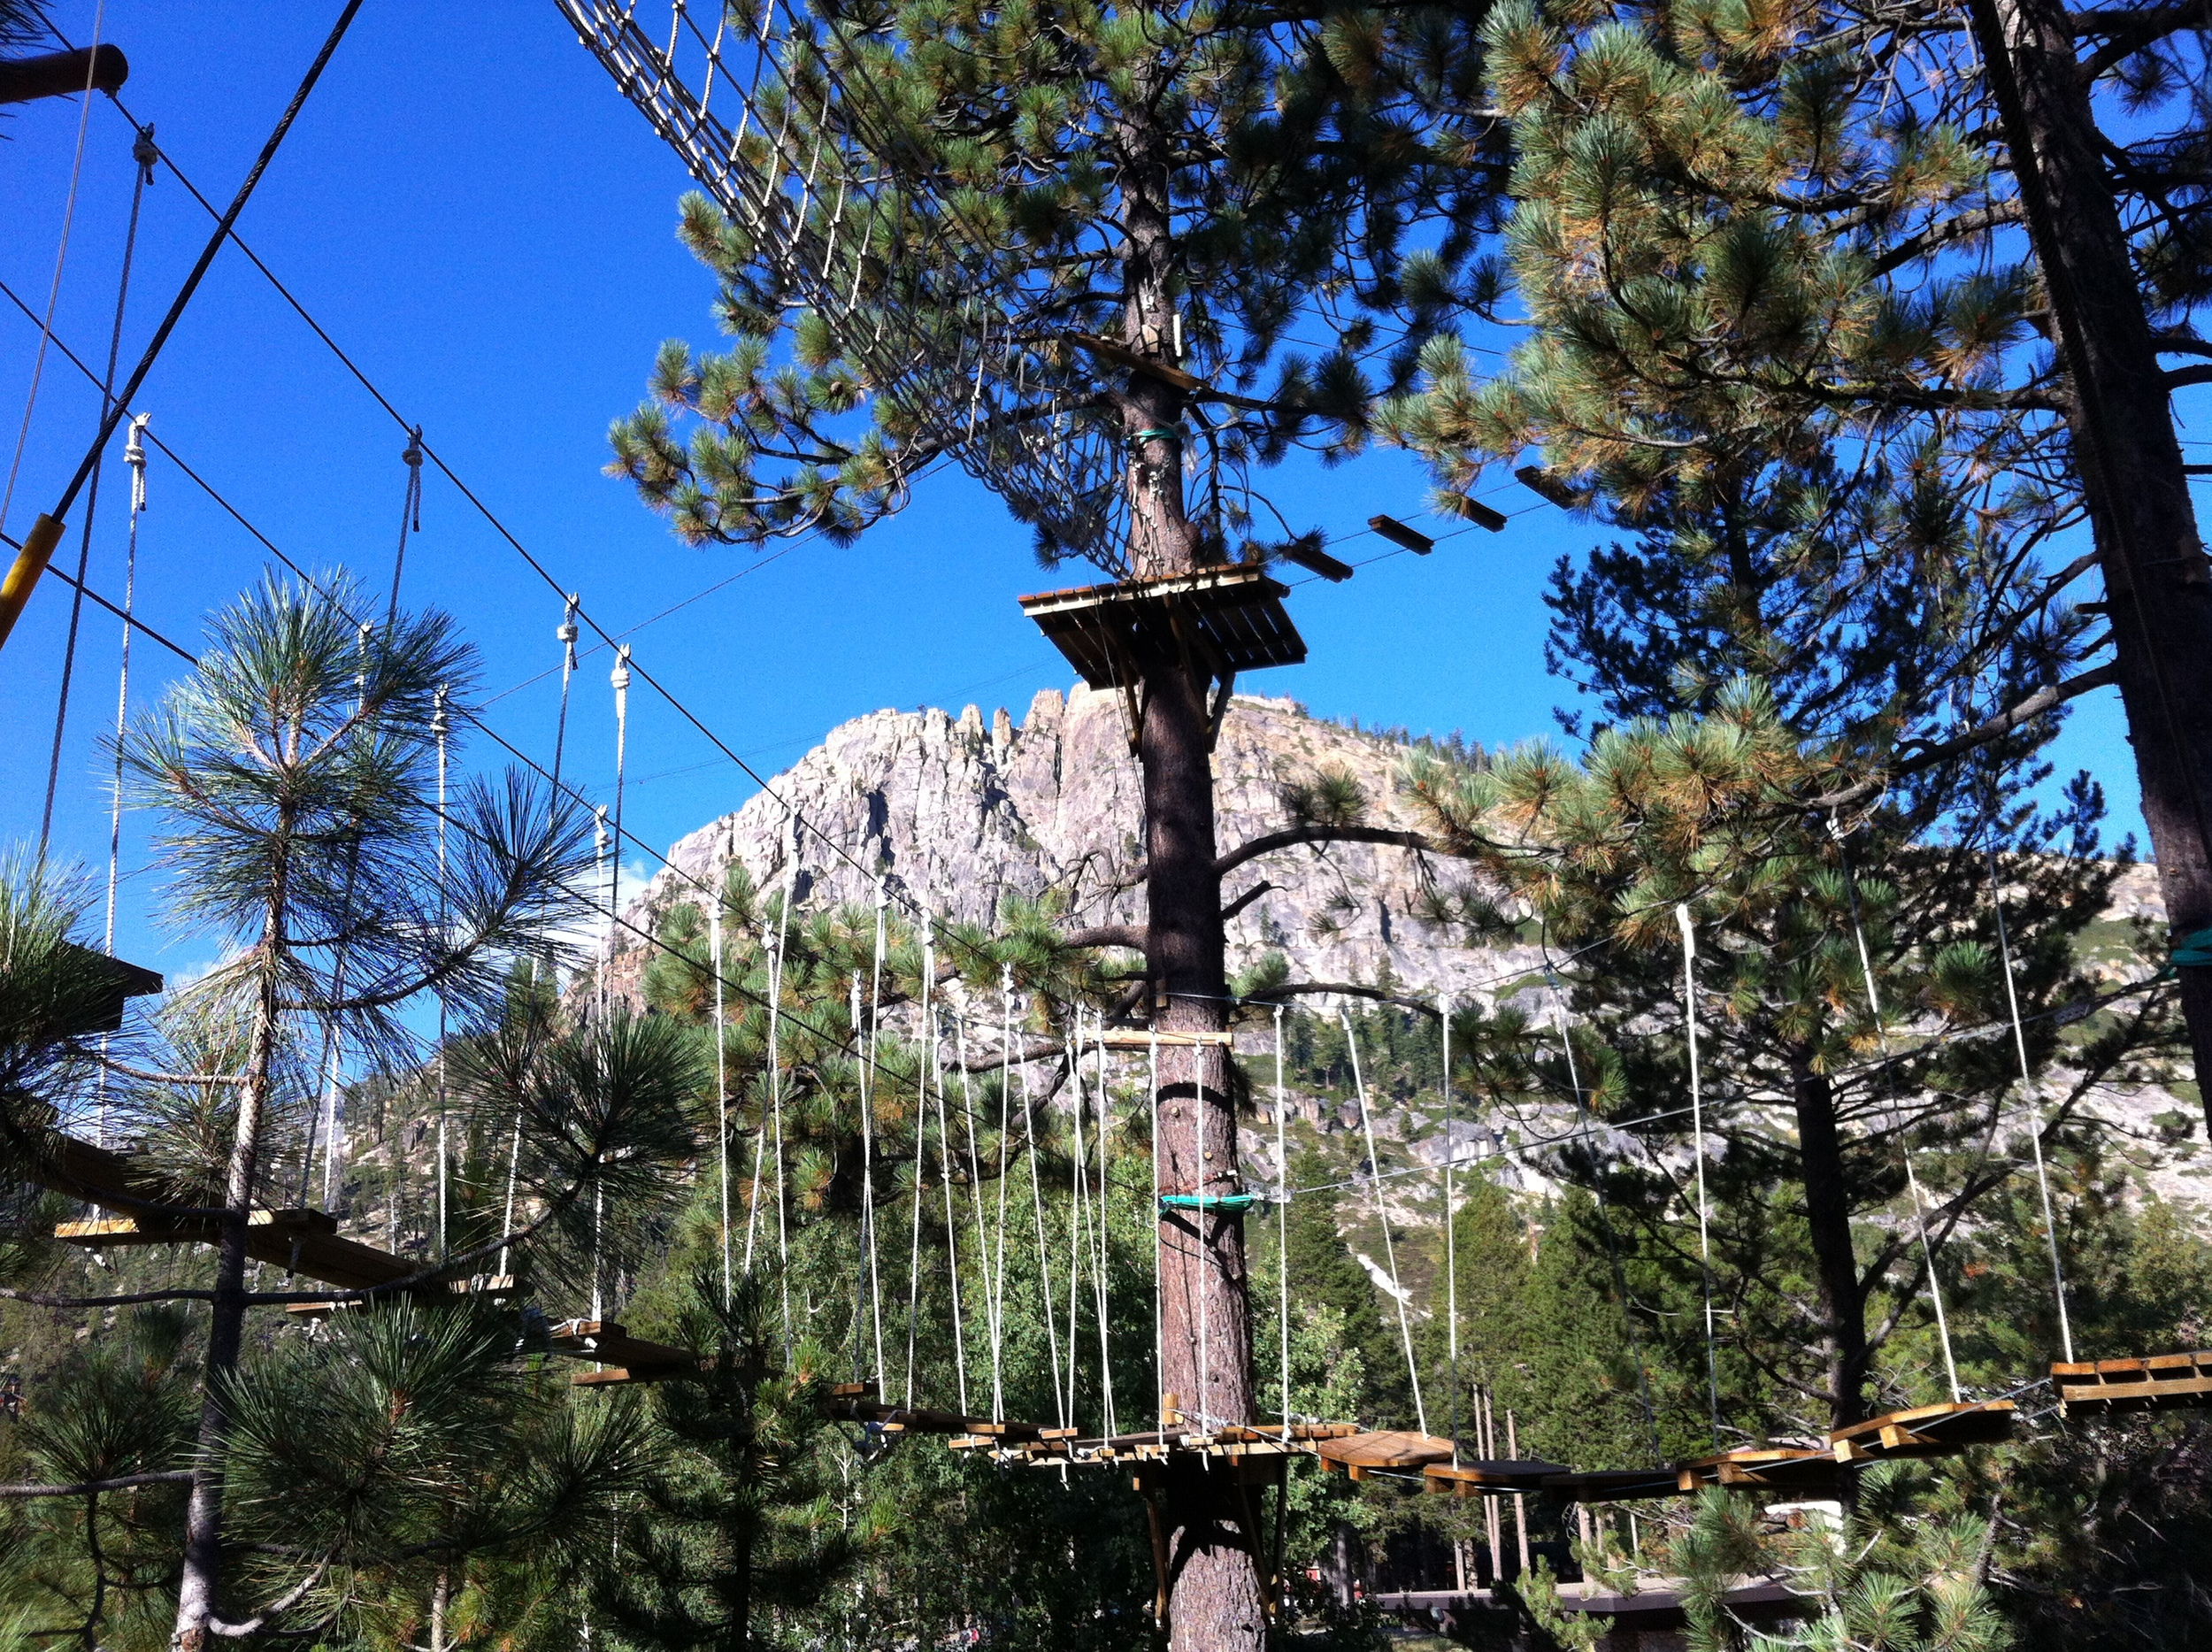 Squaw Ropes Course with Tram Peak in the background